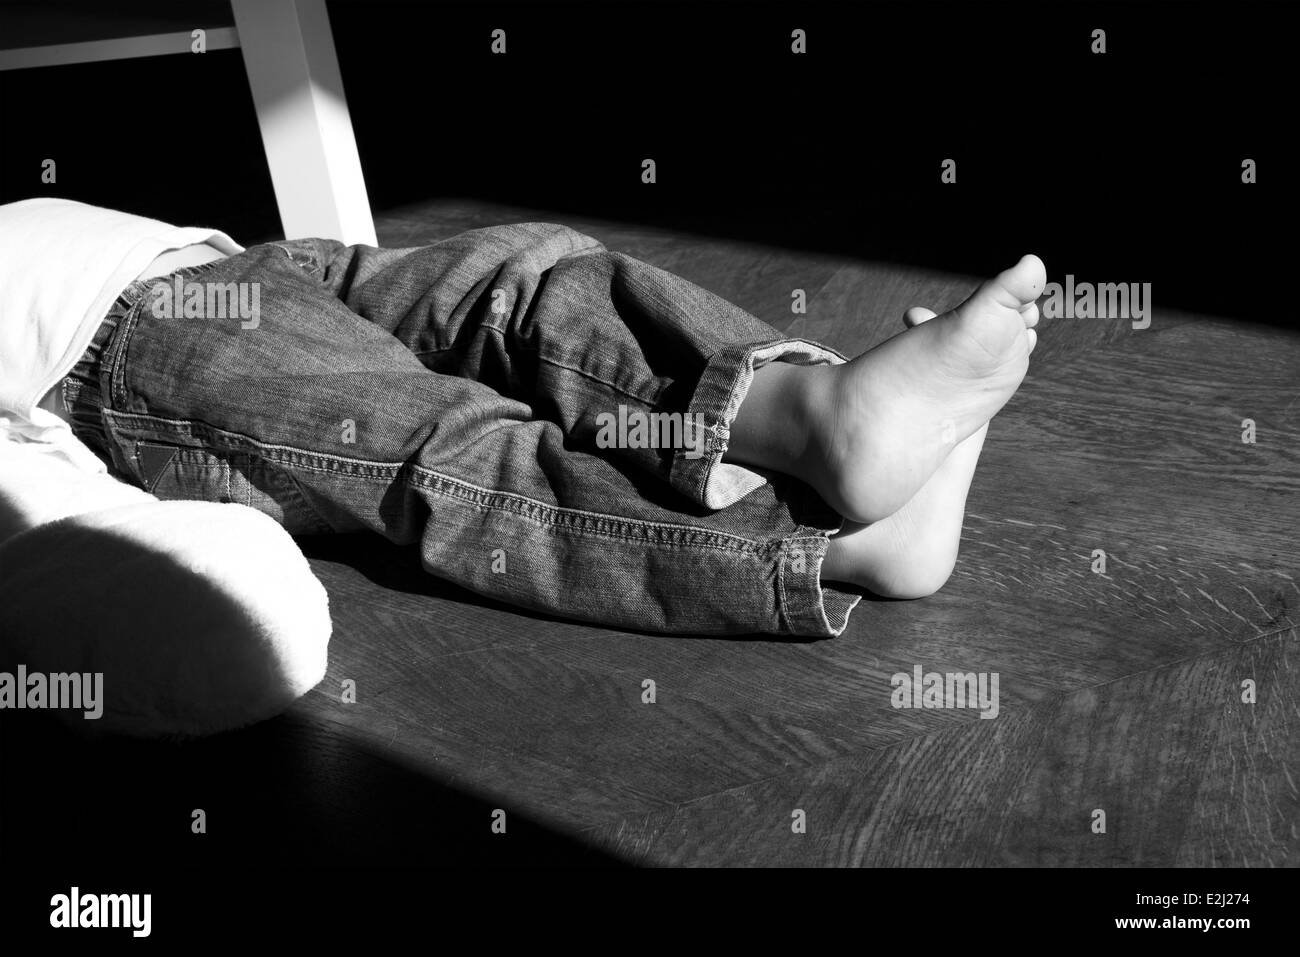 Child lying on floor with legs crossed at ankle, cropped - Stock Image